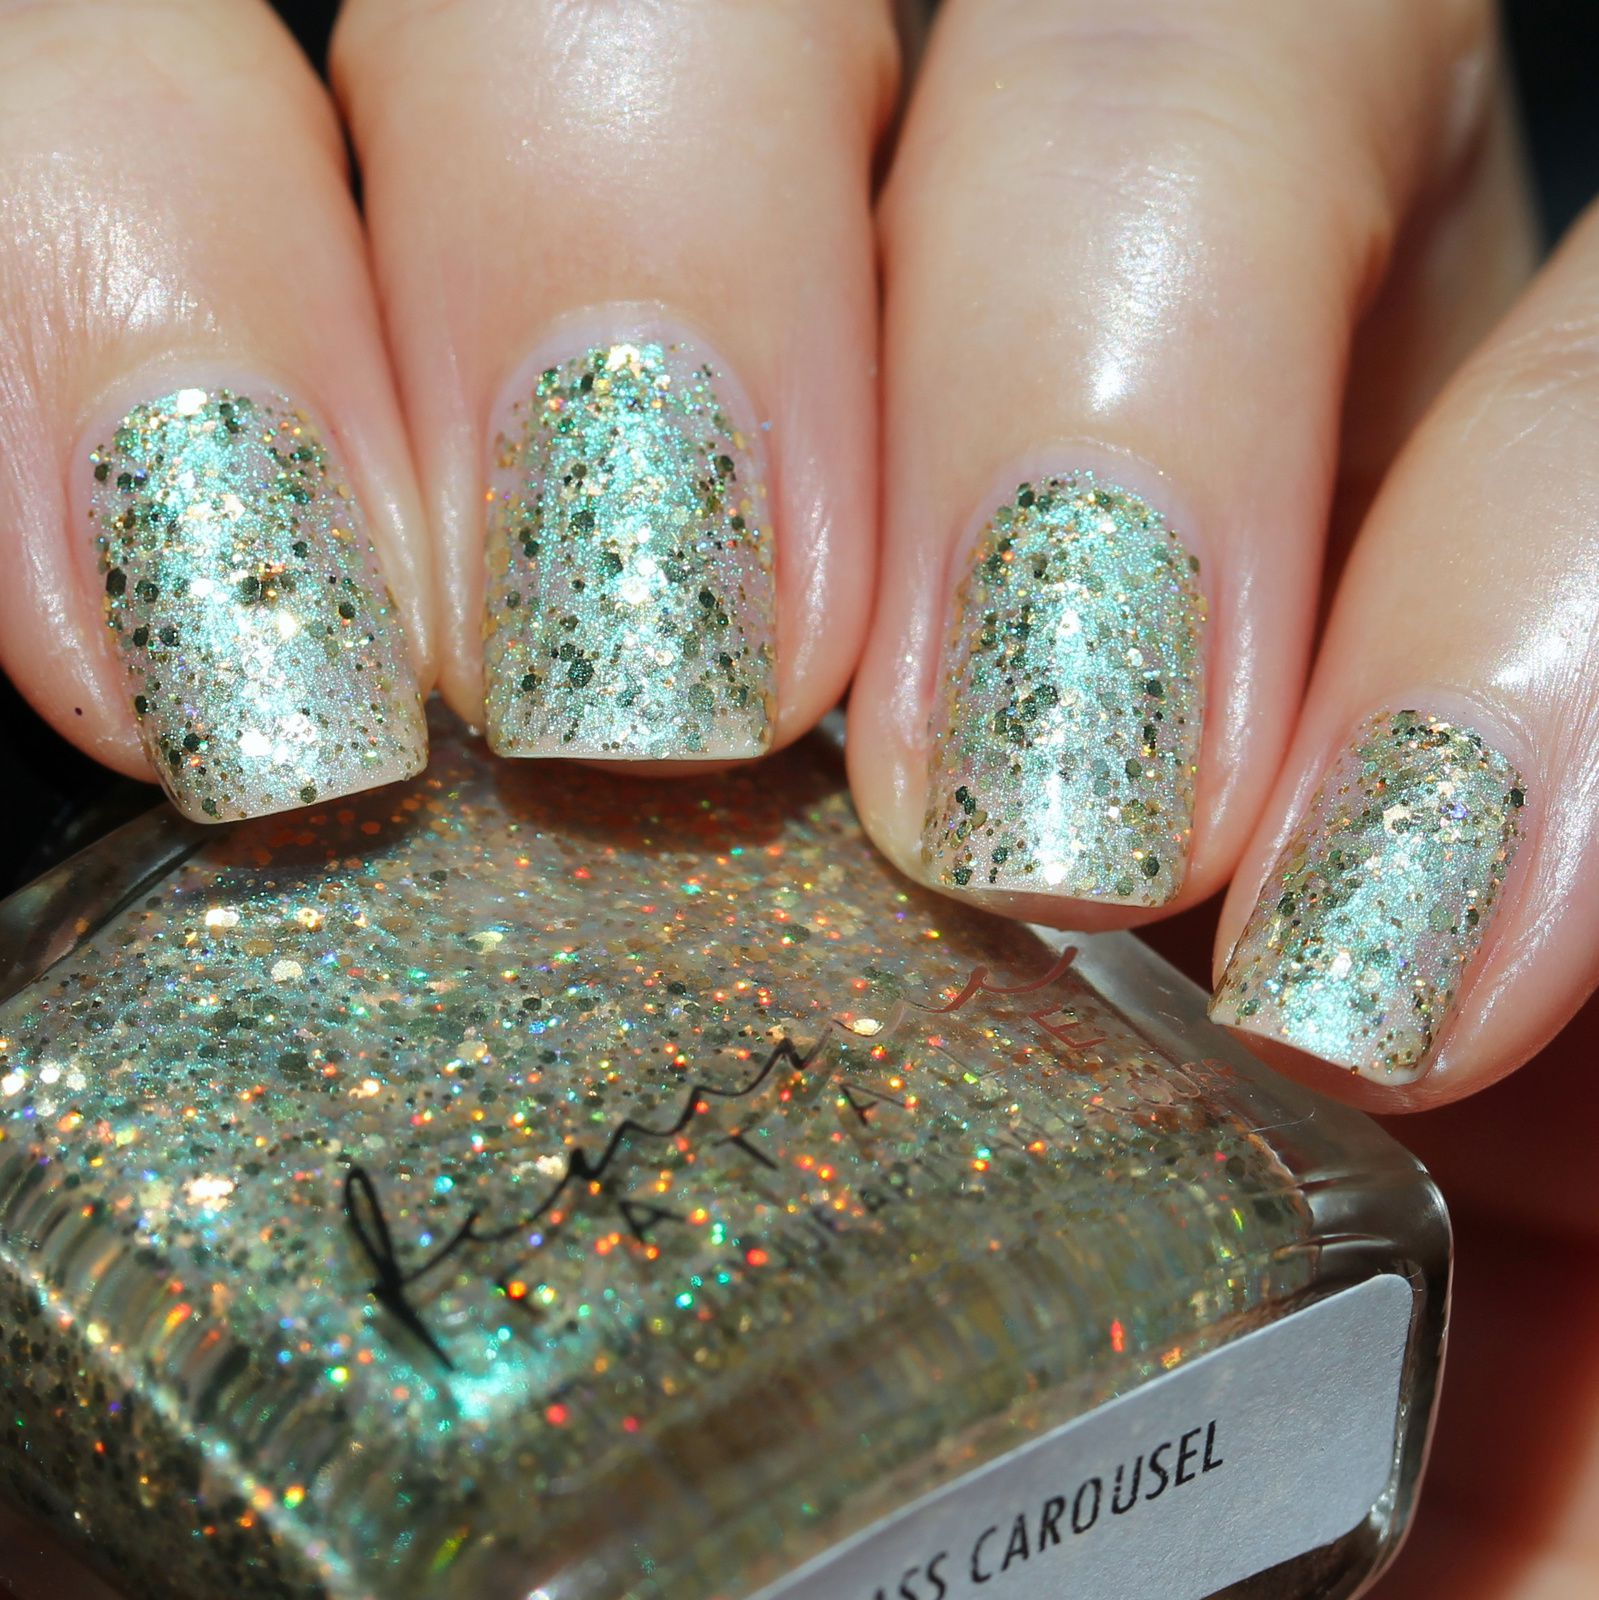 Femme Fatale Cosmetics - Glass Carousel (3 coats, no top coat)